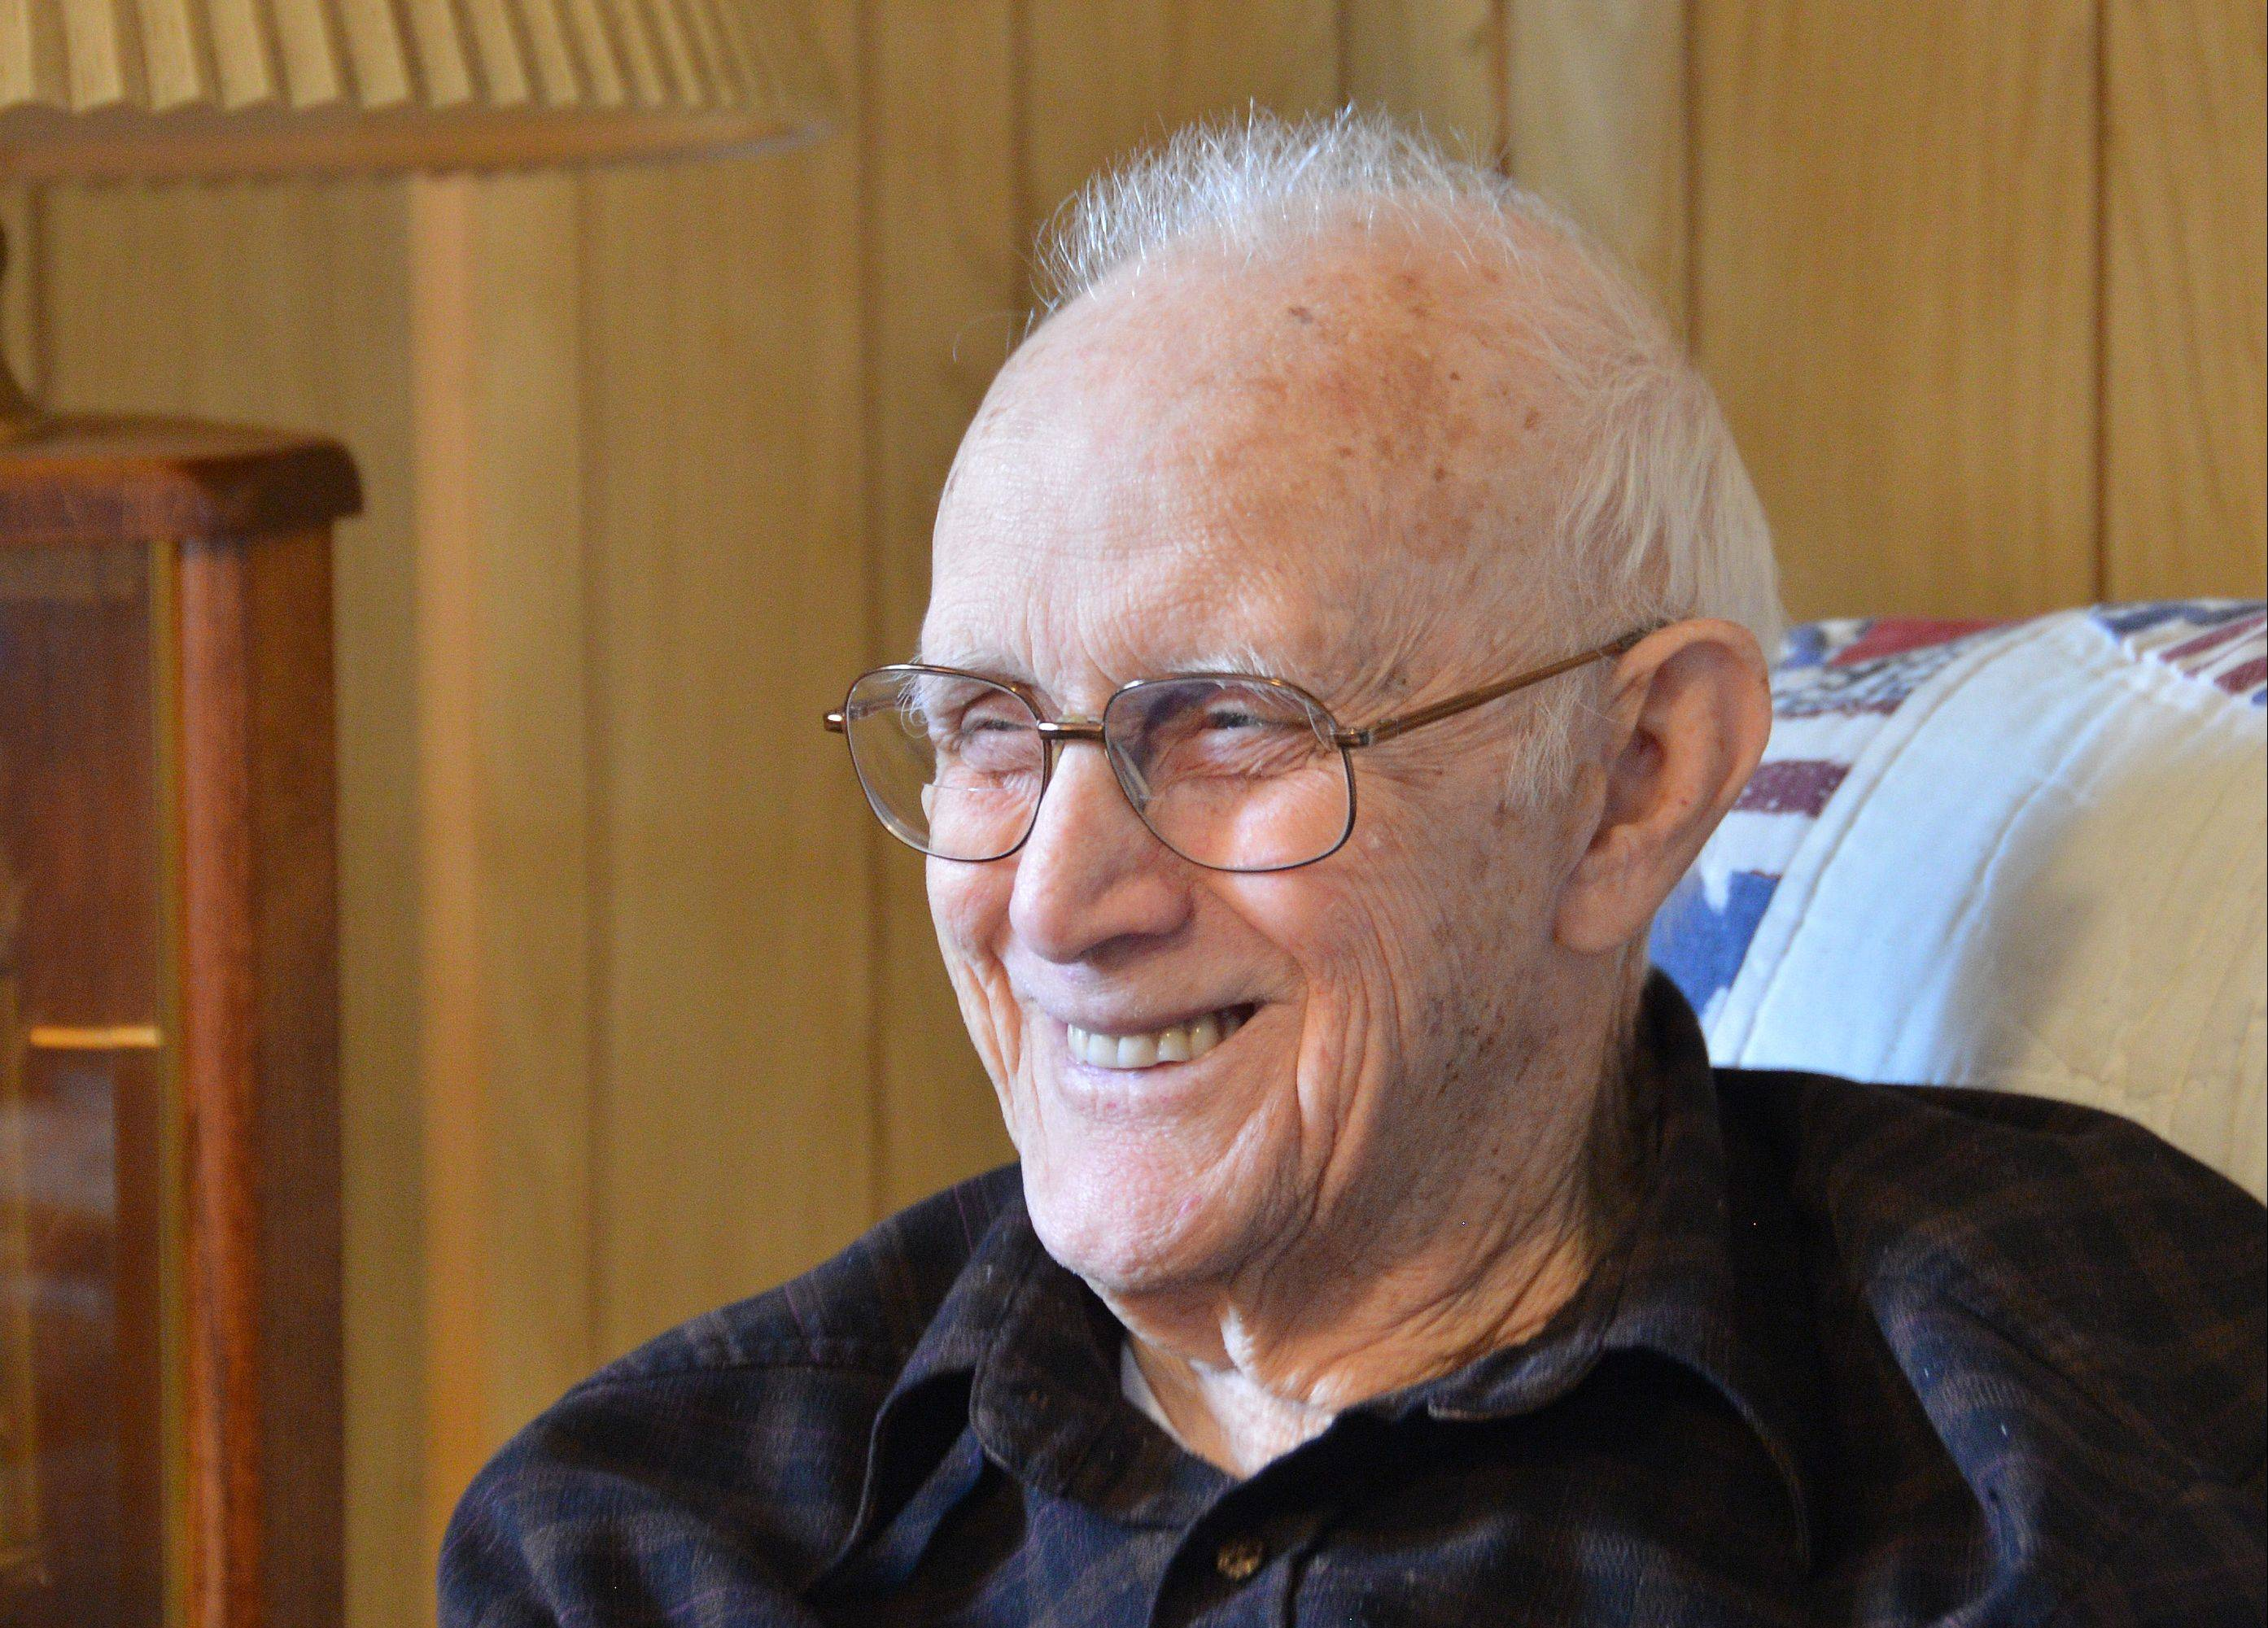 The 18 months he spent in Korea as a soldier fighting the enemy and the elements were grueling, but Virgil Banker says he remains grateful that he and his three brothers all made it home from the Korean War.